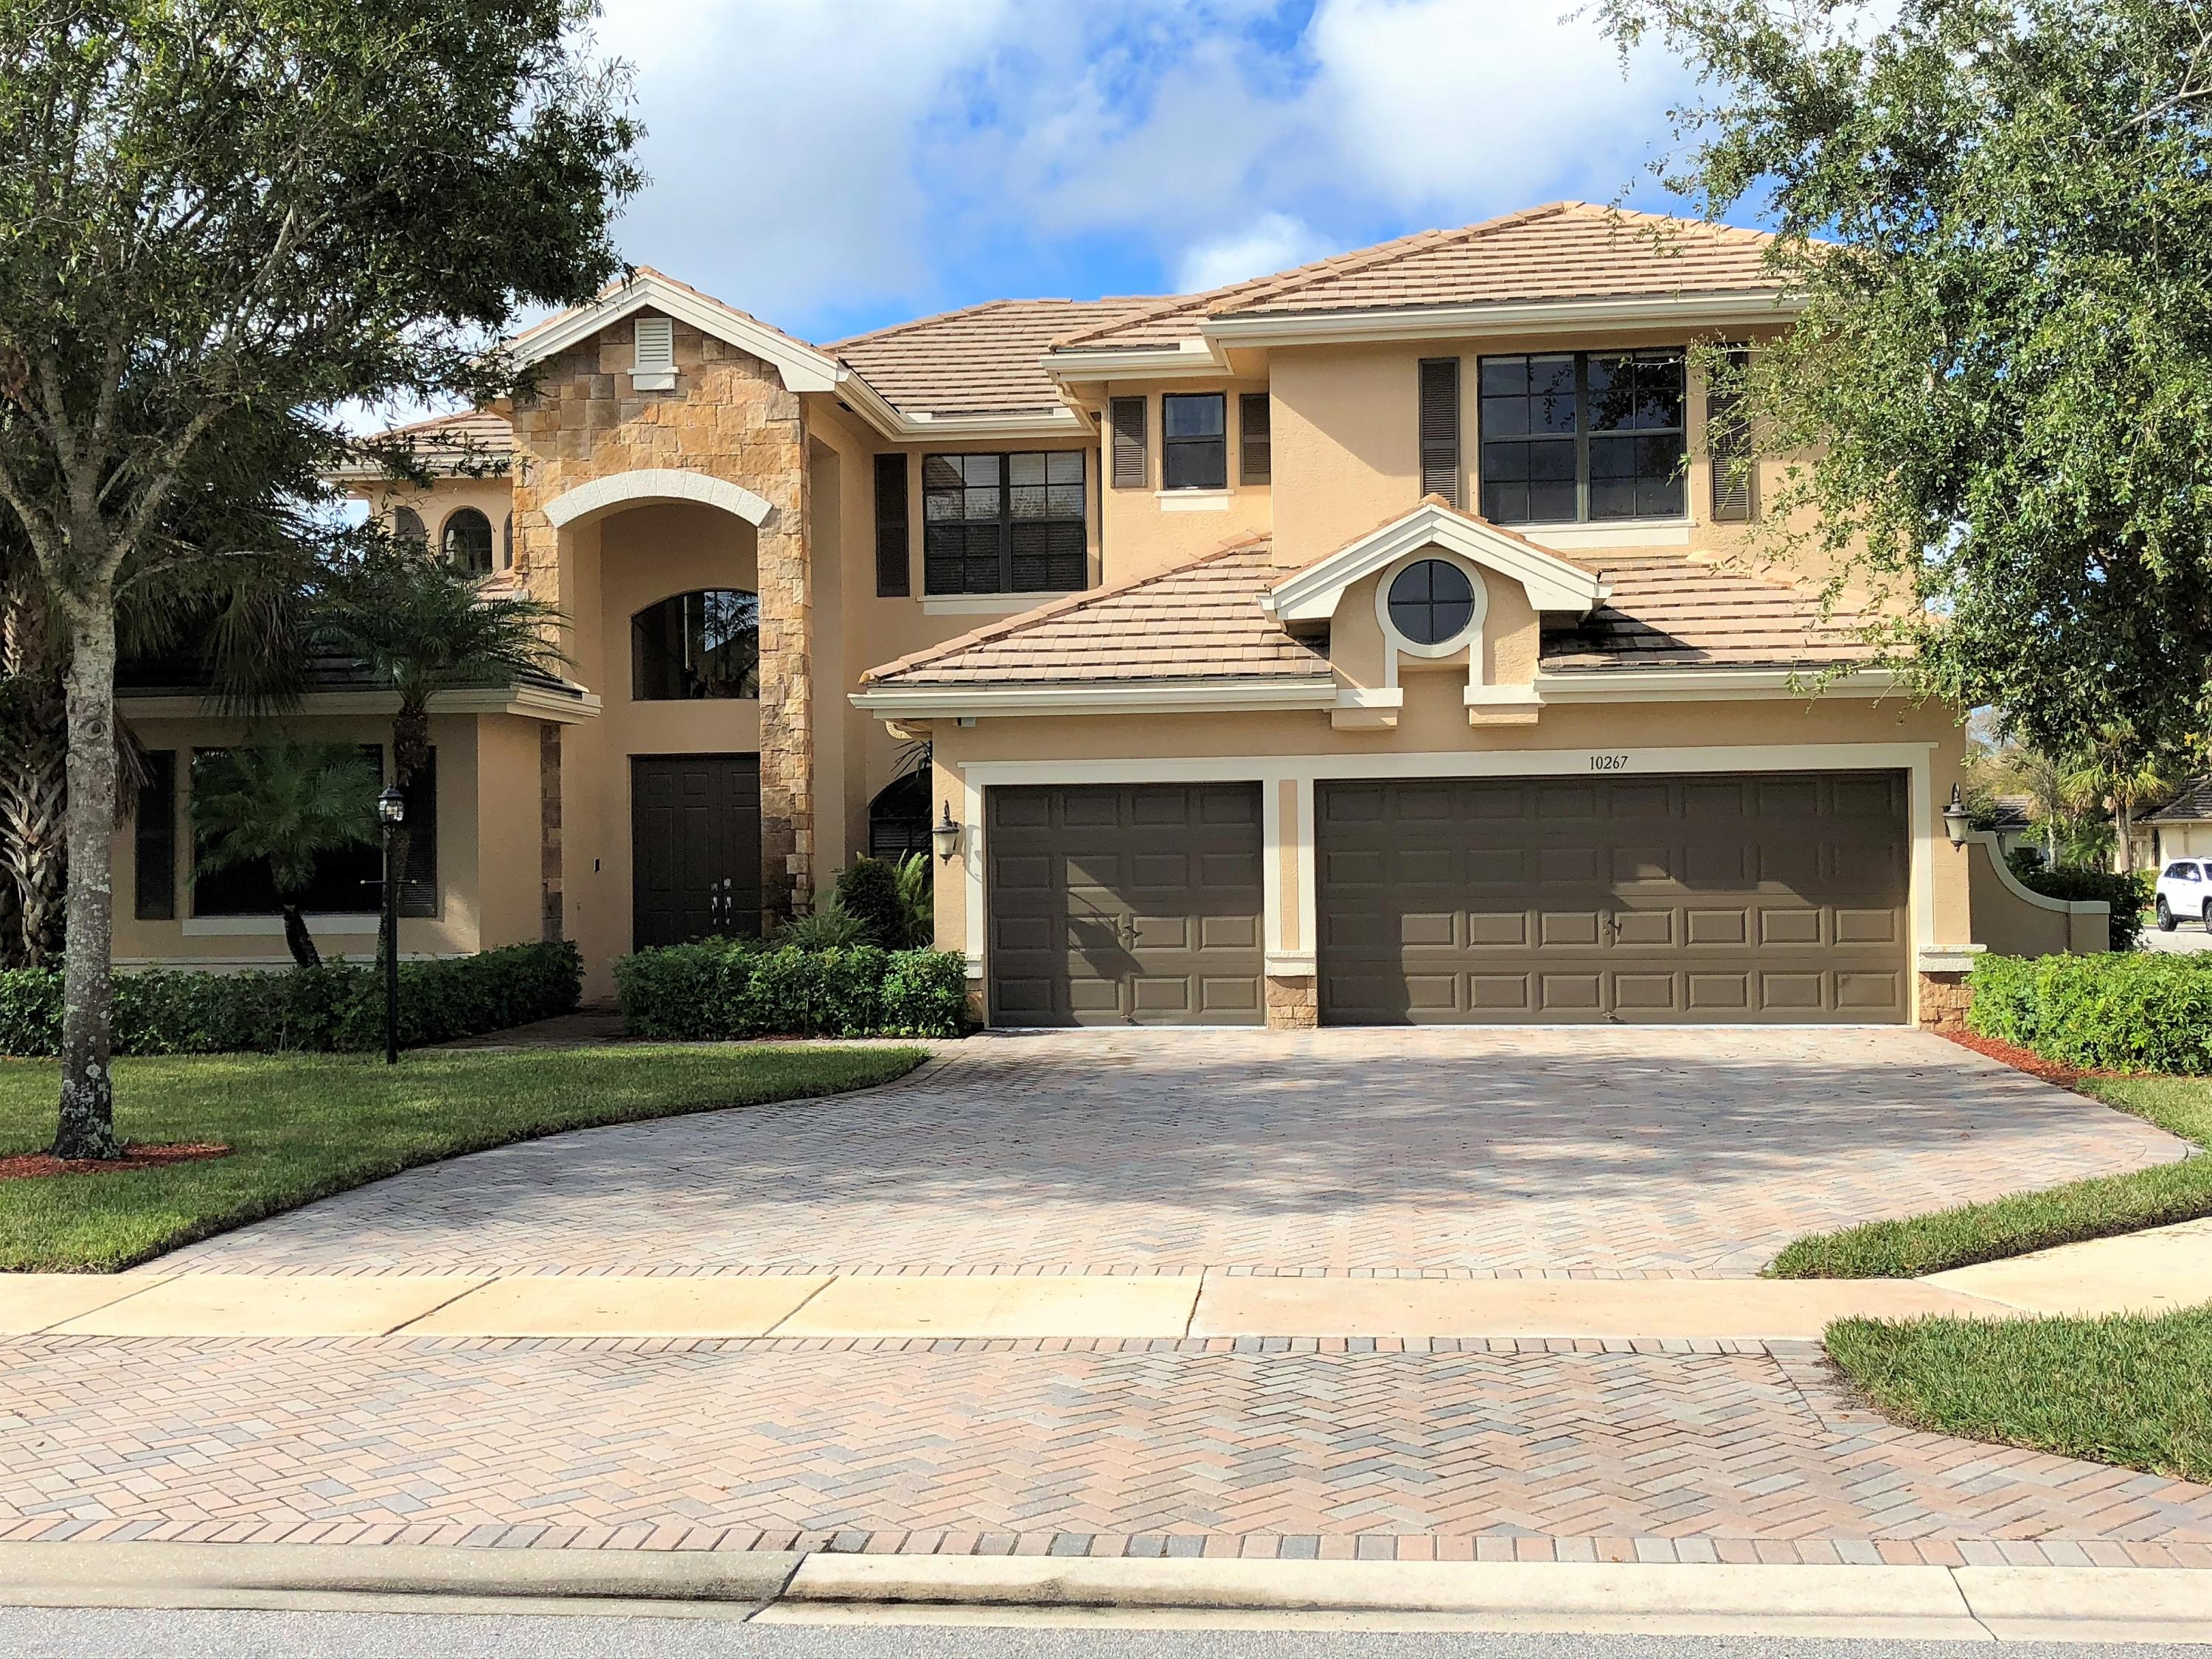 10267 Trianon Place - 33449 - FL - Wellington